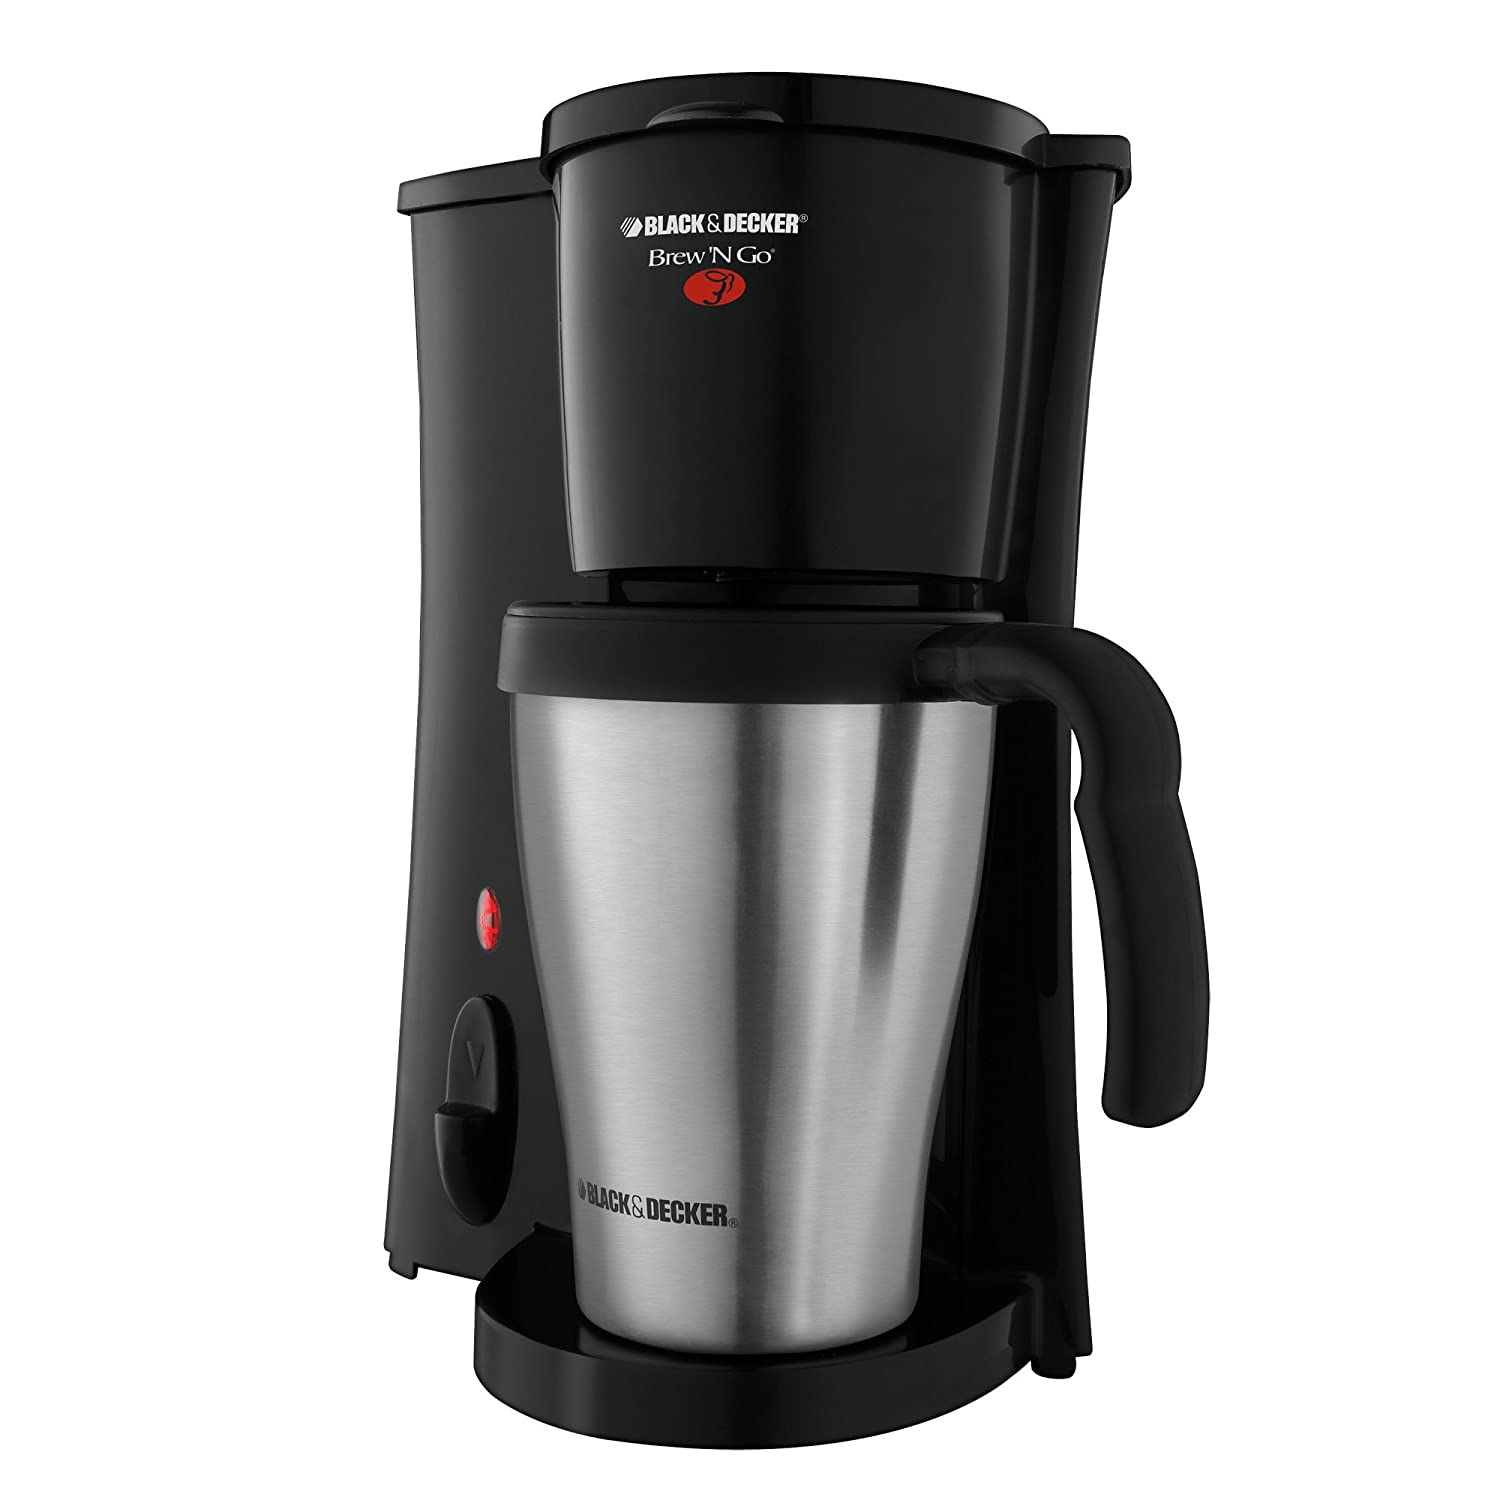 BLACK+DECKER Brew 'n Go Personal Coffeemaker; Travel Mug